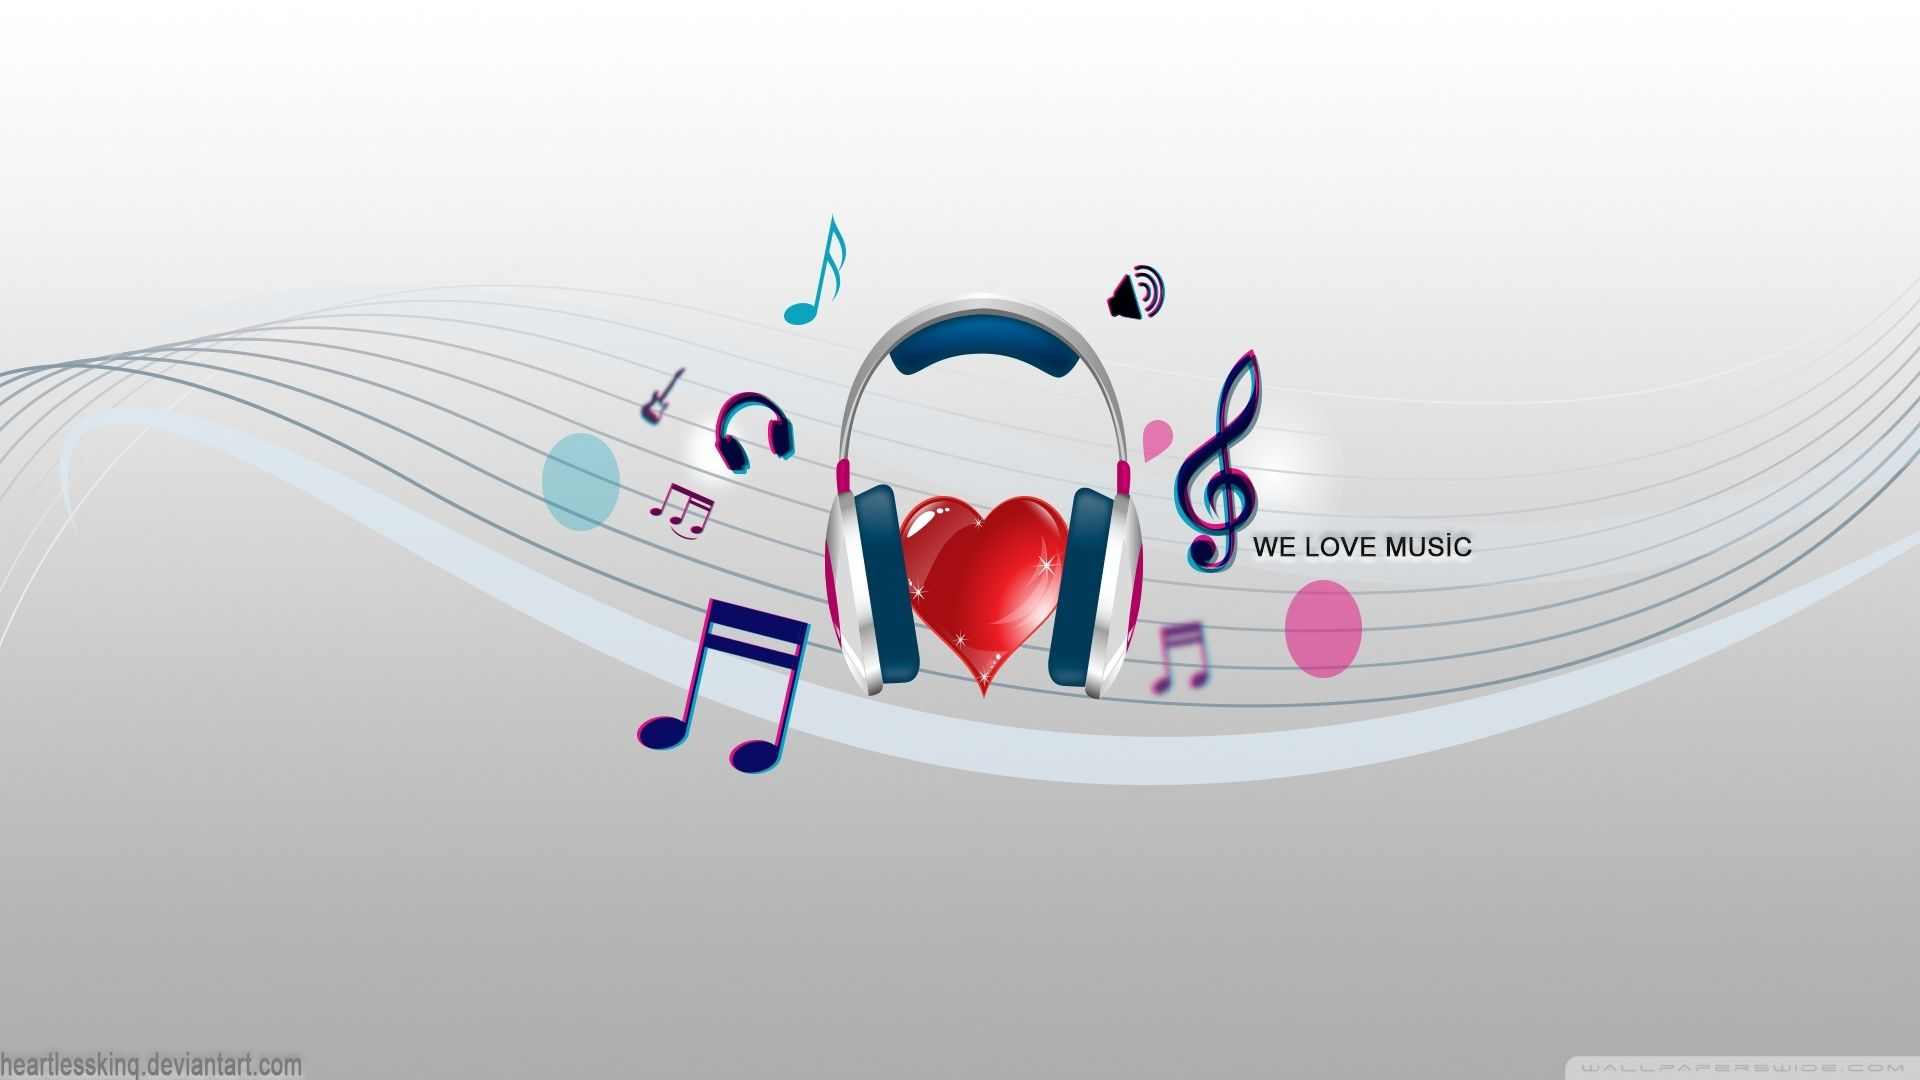 Download hd images of i love music - We Love Music Hd ...